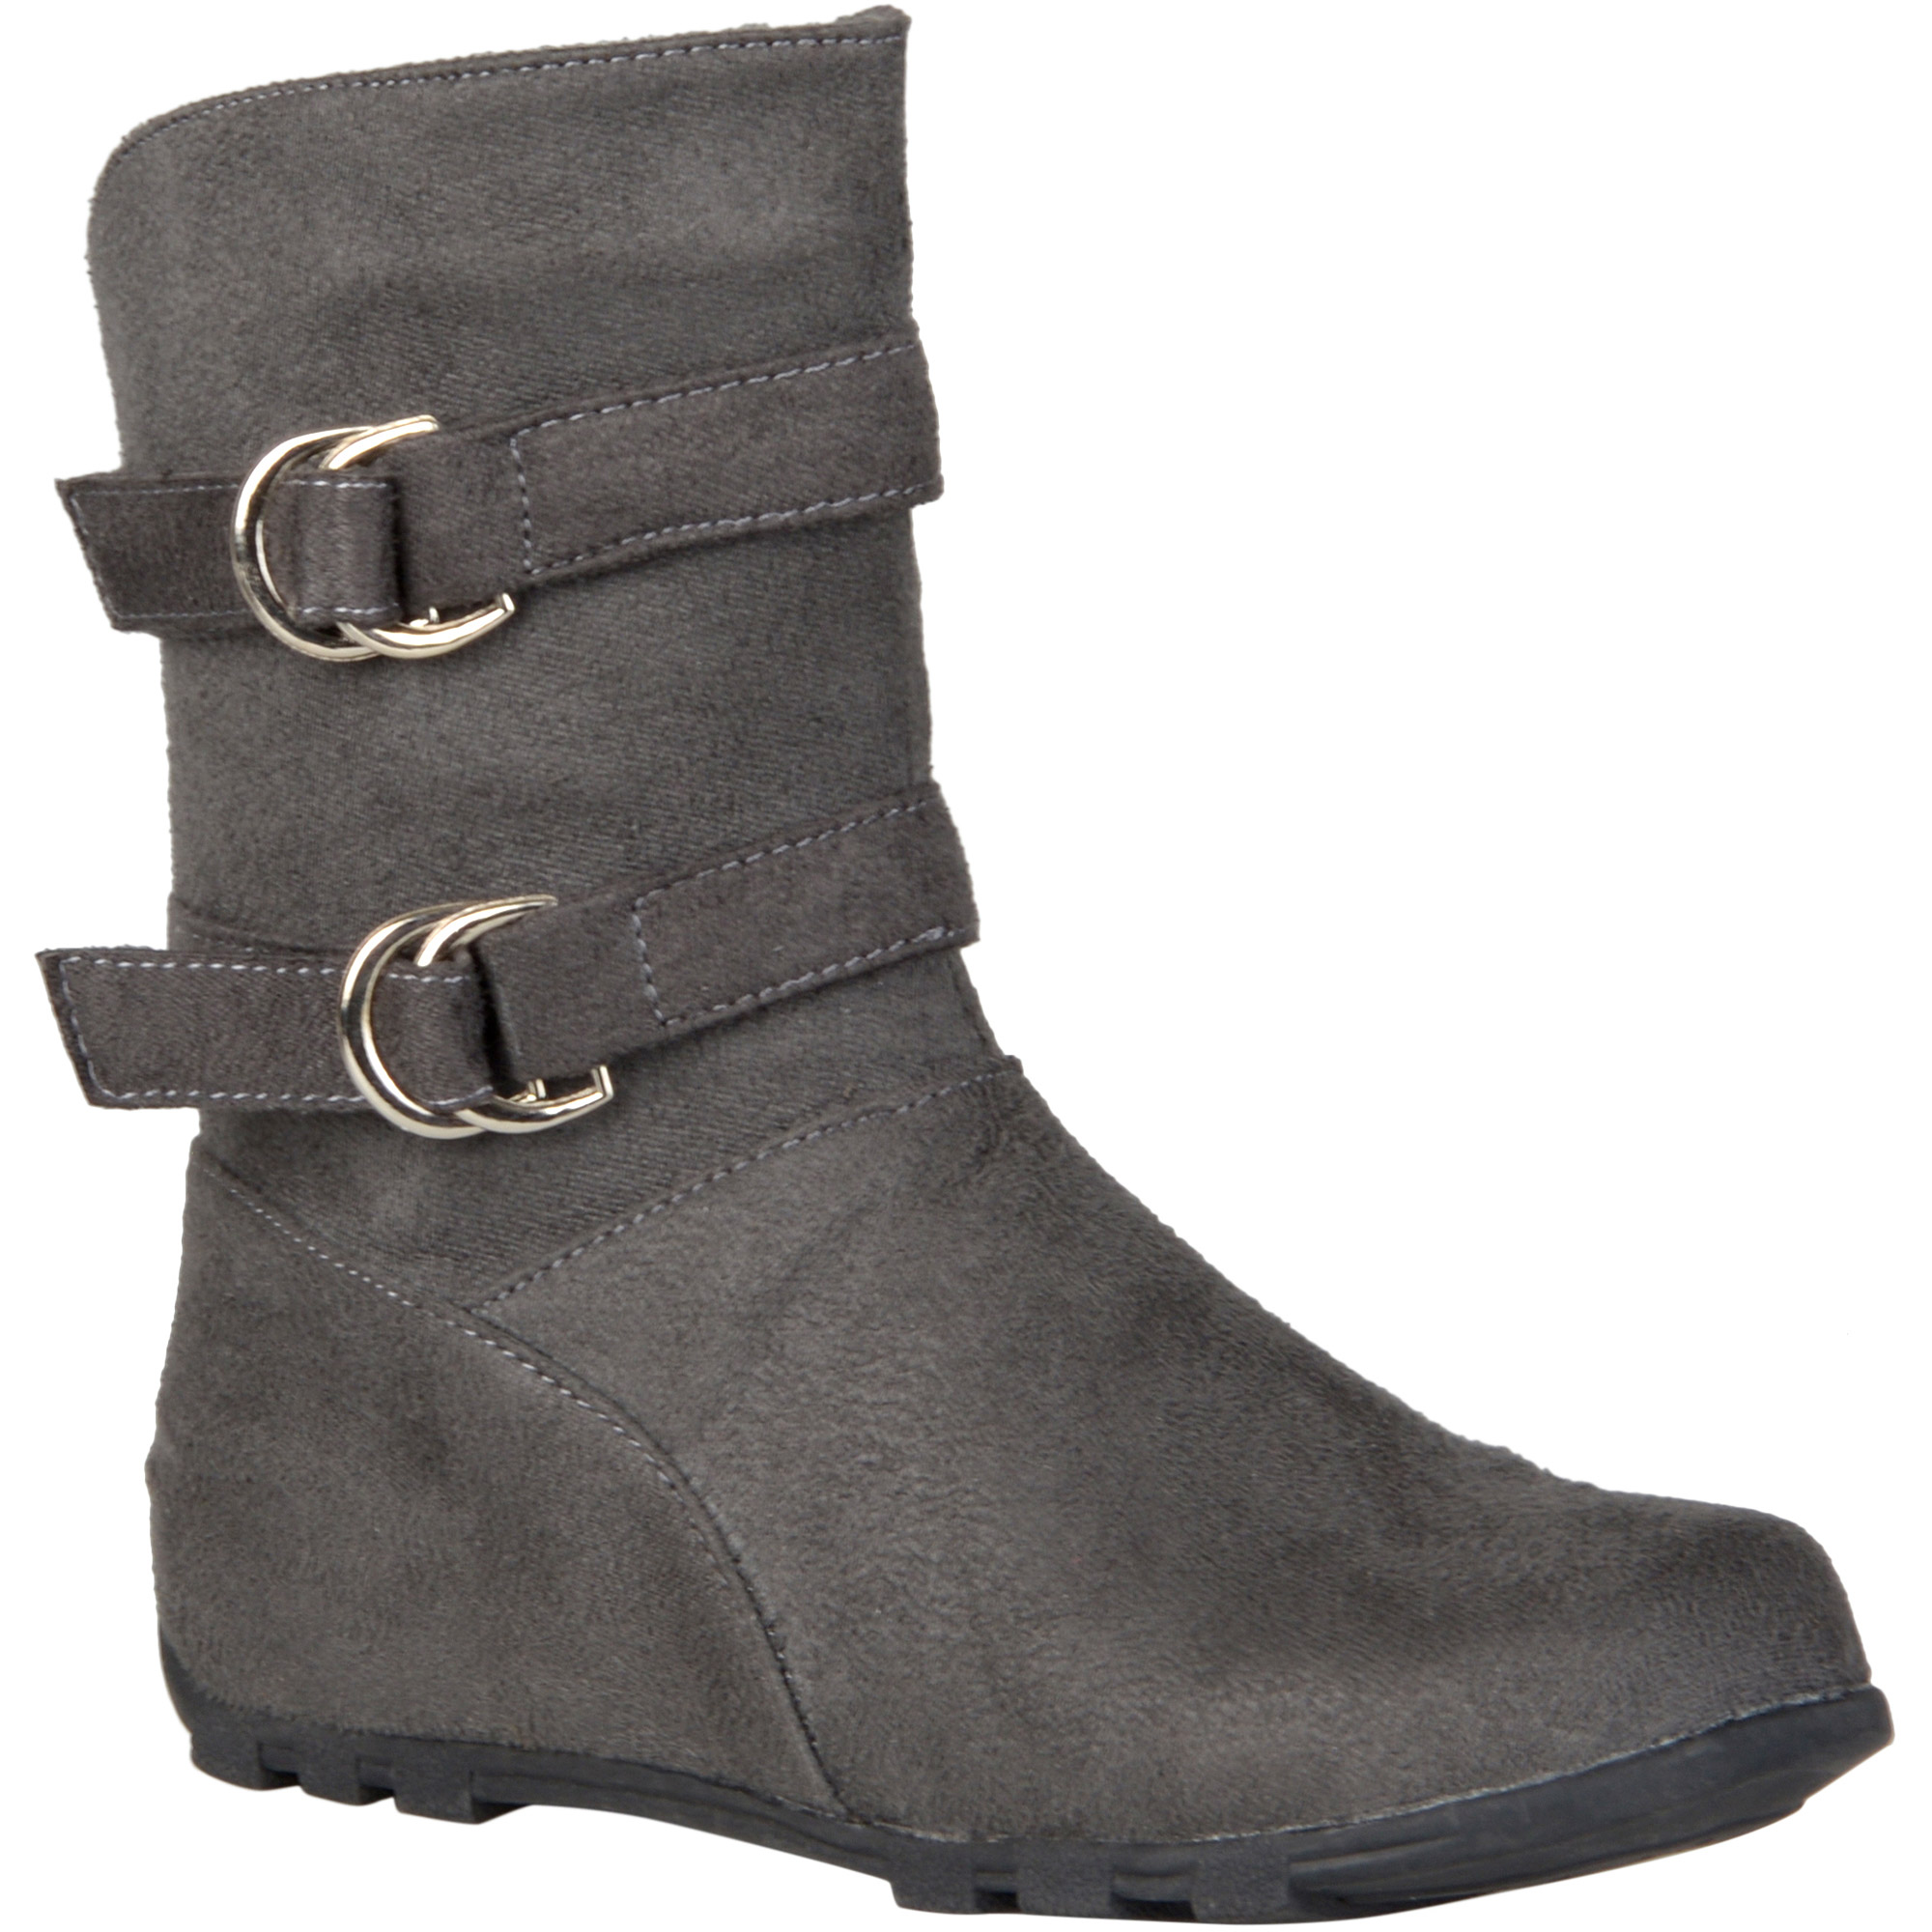 Brinley Co. Kids Girl's Buckle and Strap Accent Mid-calf Boots